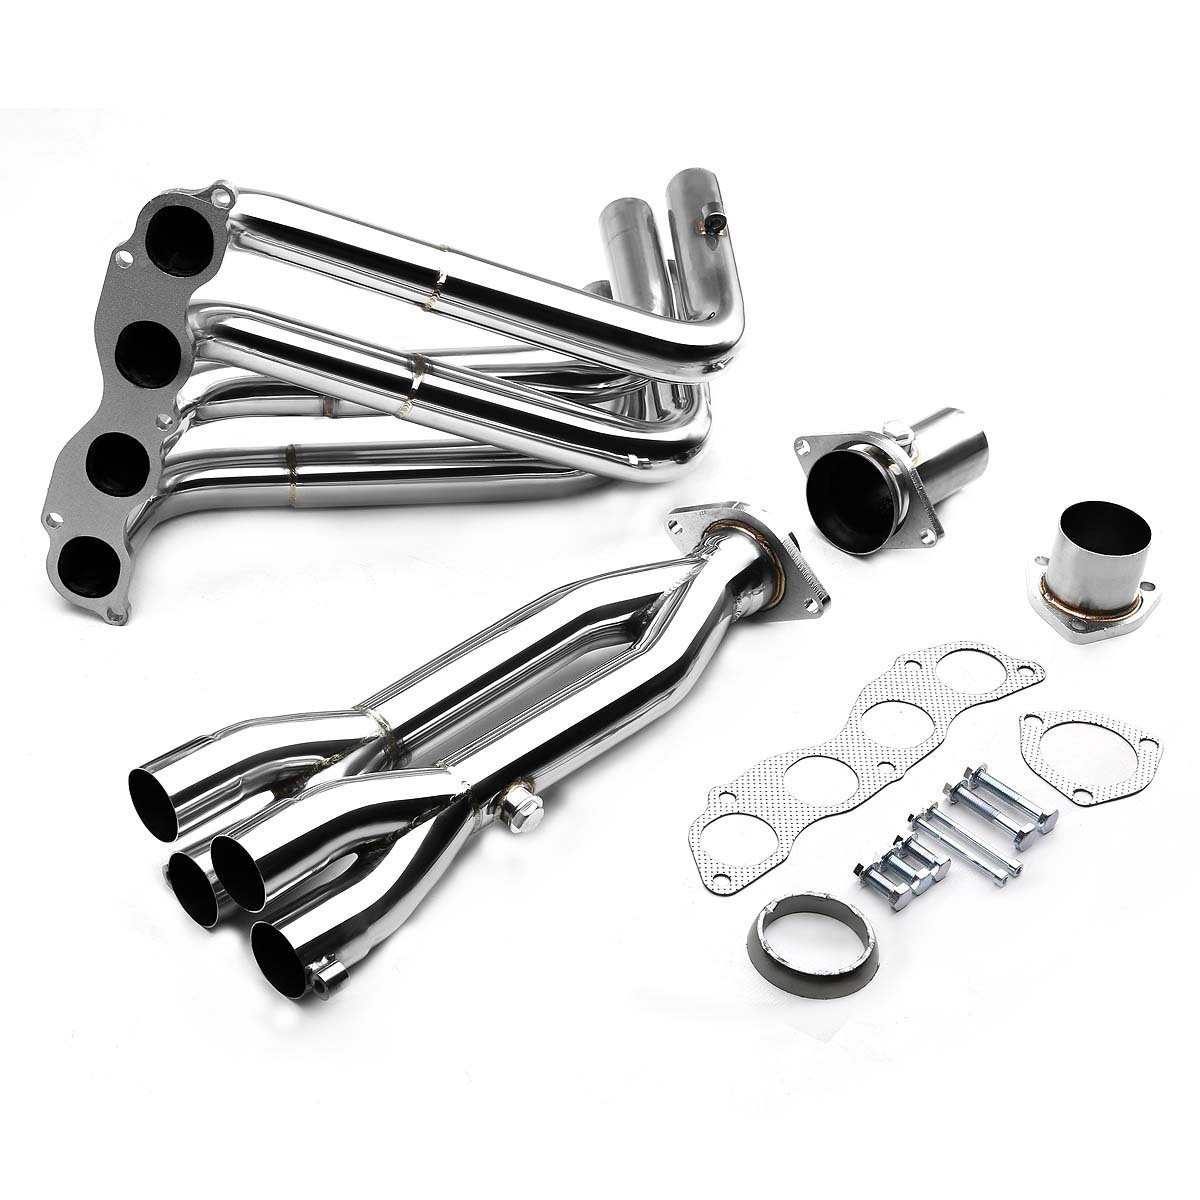 Acura TSX CL Stainless TRIY Racing Exhaust Header - Acura tsx accessories